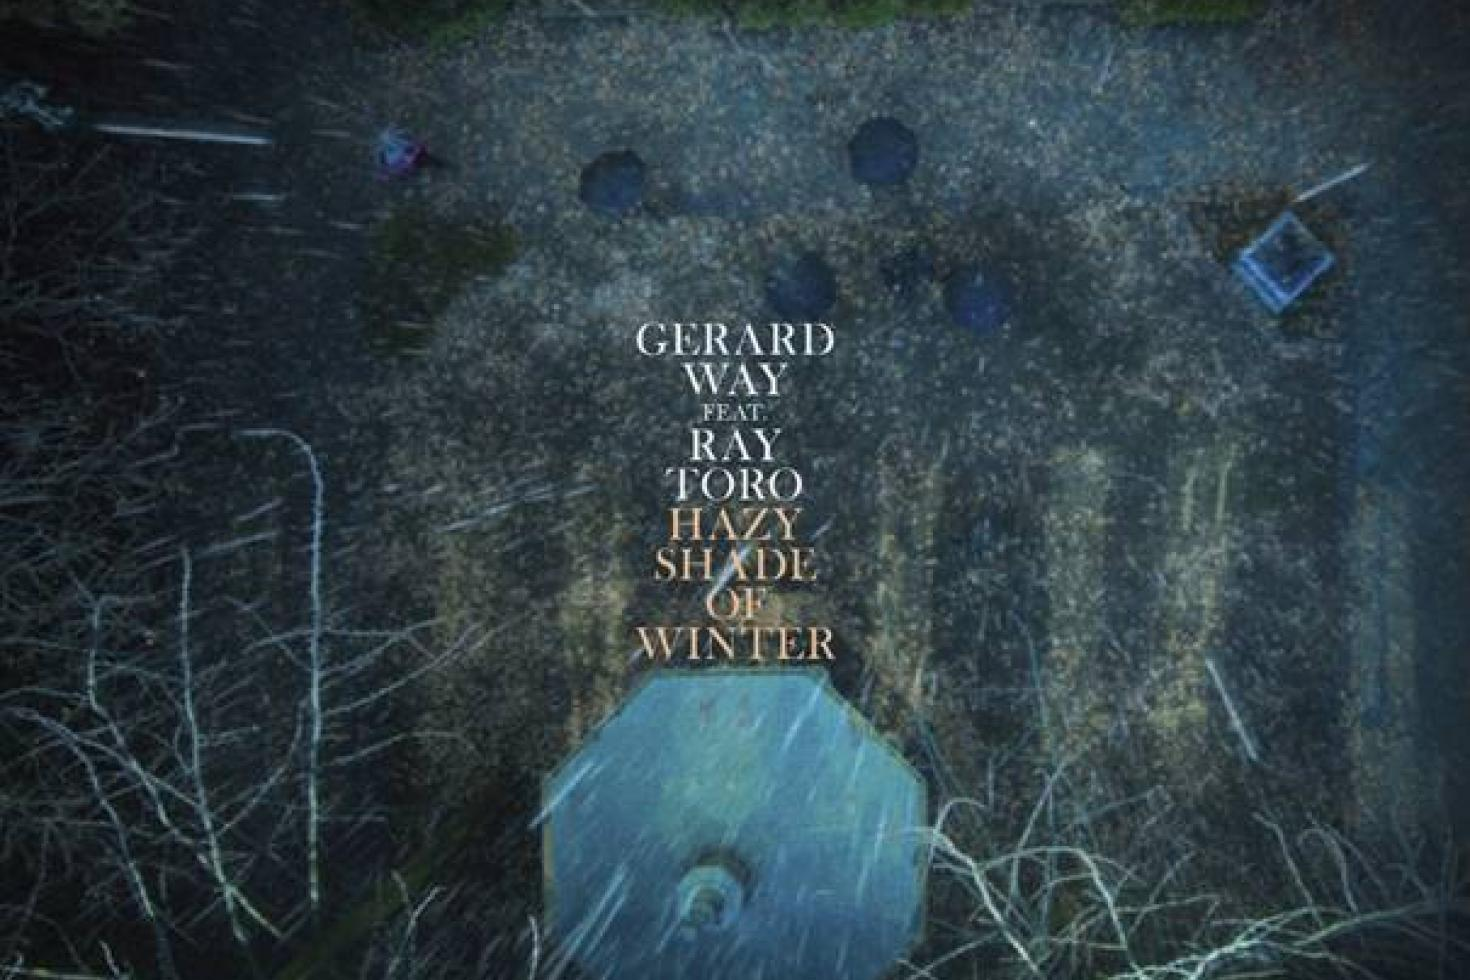 Gerard Way releases new track 'Hazy Shade Of Winter'